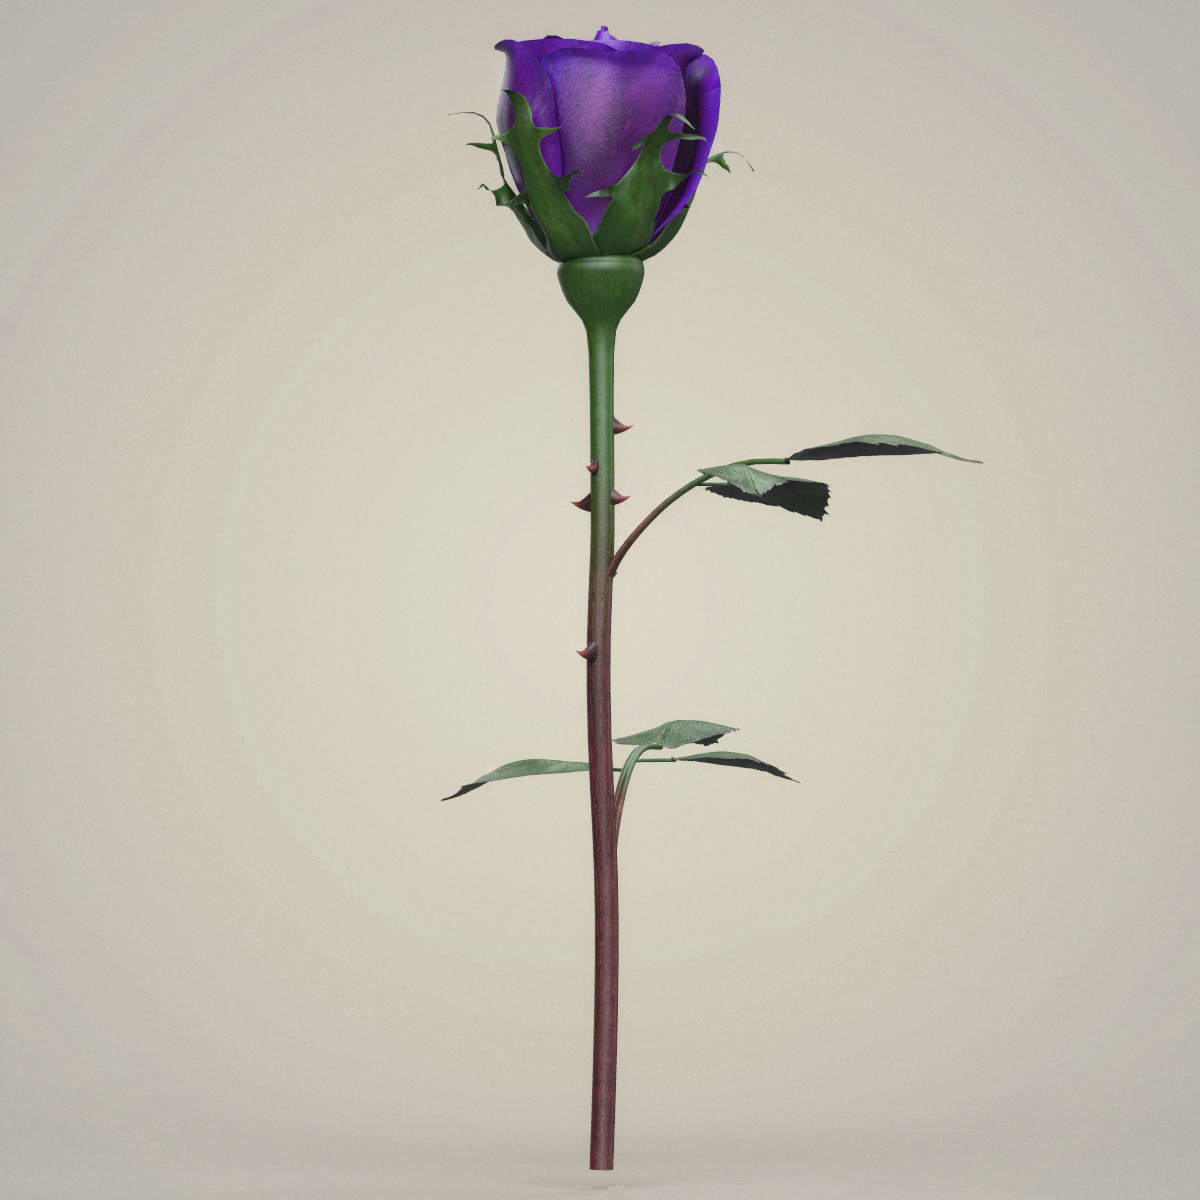 rose flower collection 3d model max fbx c4d ma mb obj 252767